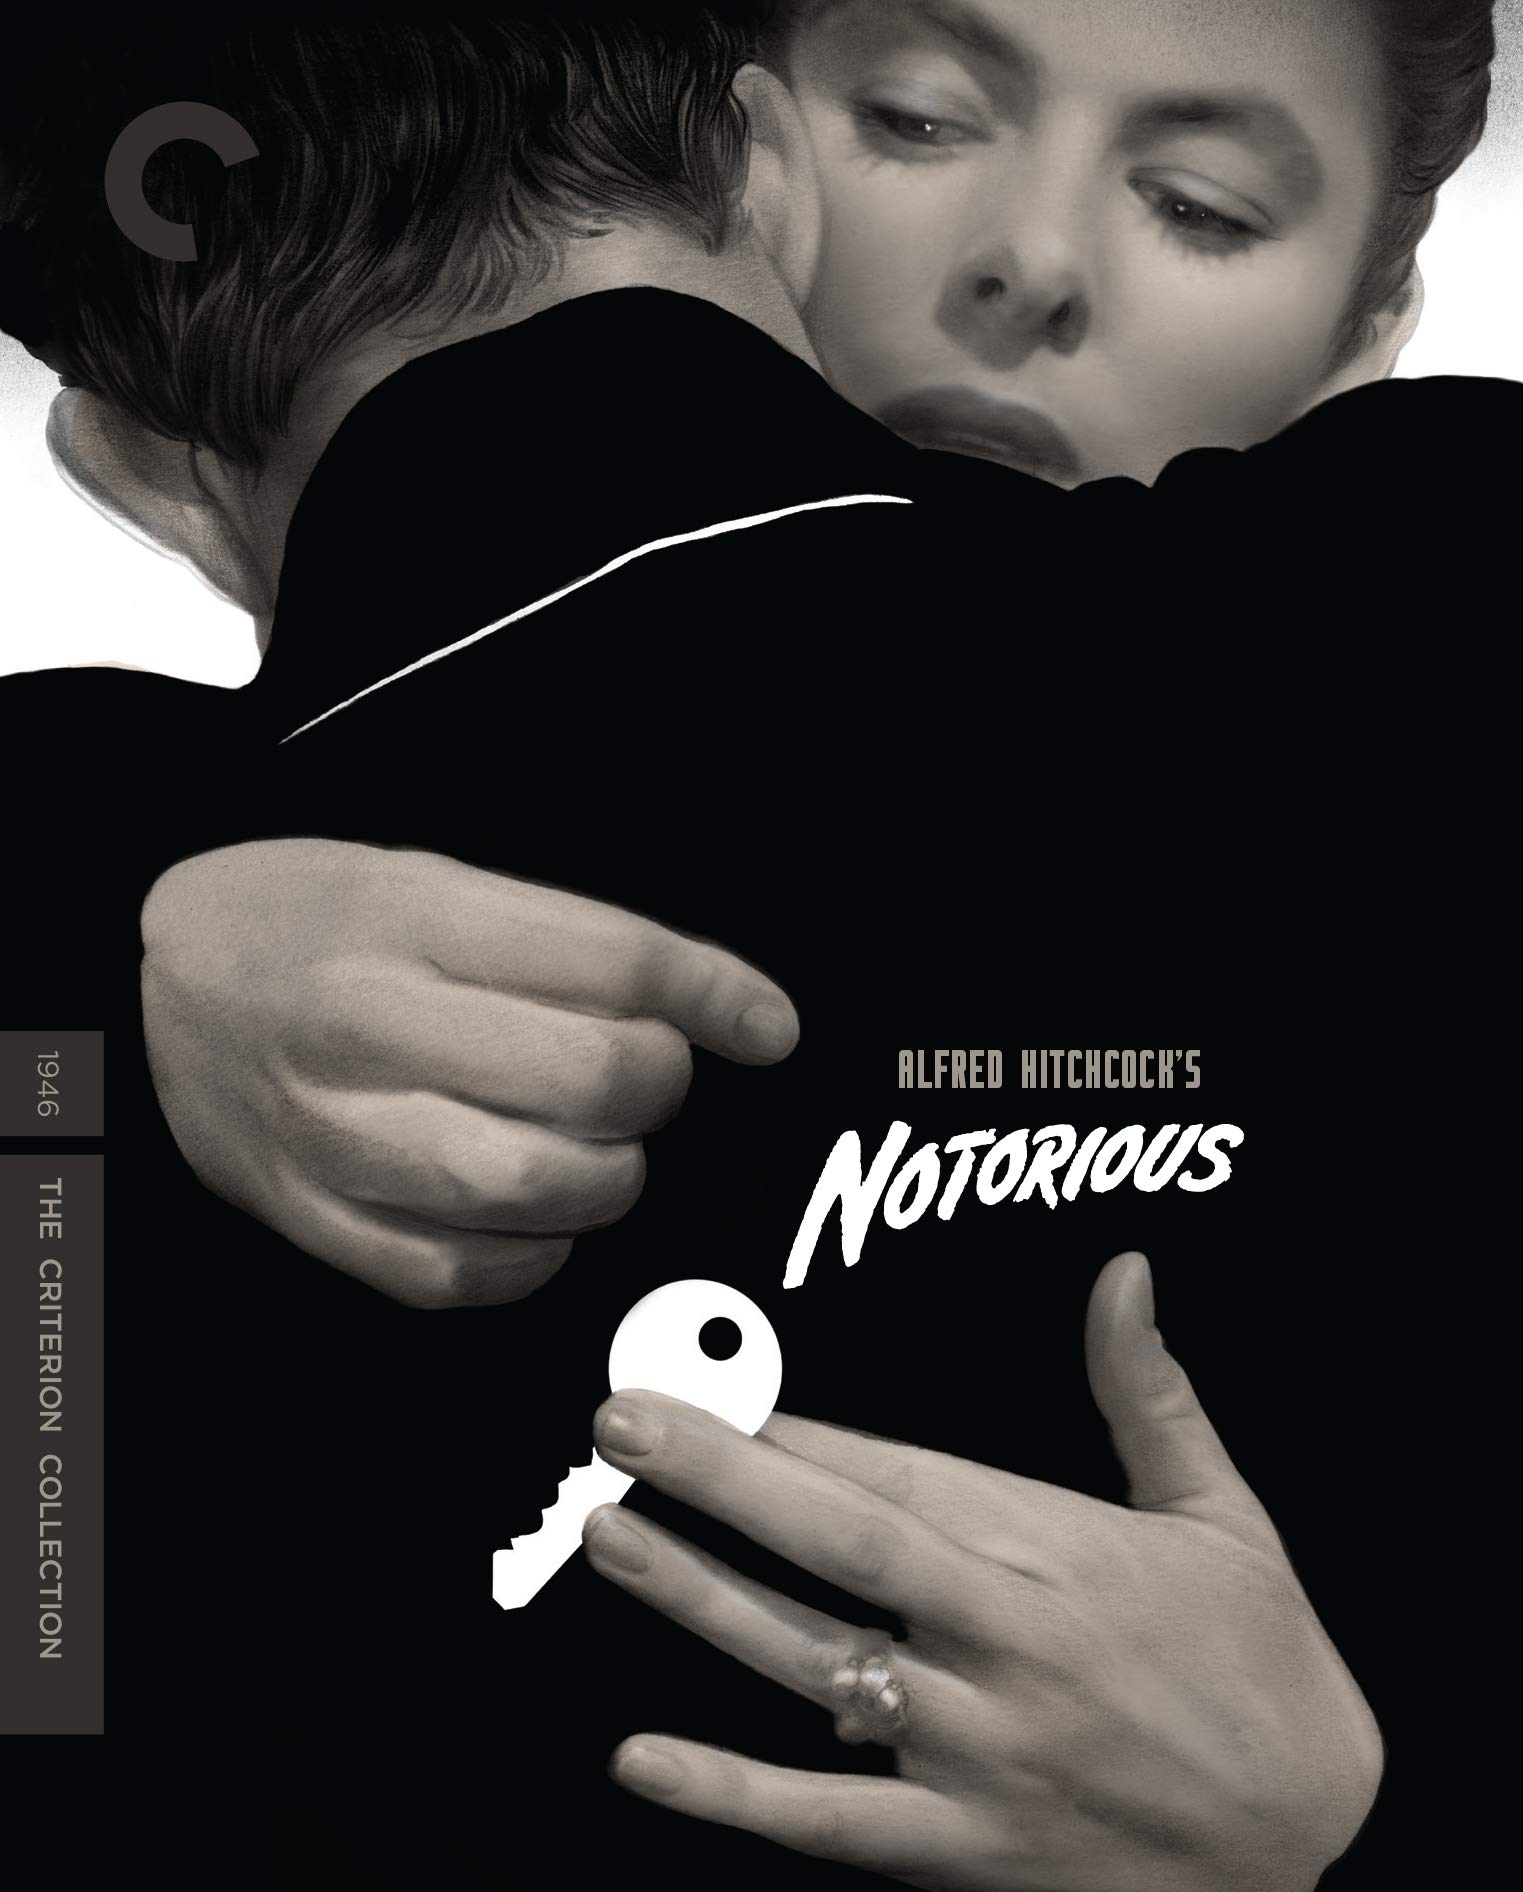 Blu-ray : Notorious (criterion Collection) (4K Mastering, Restored, Special Edition, Widescreen, Mono Sound)